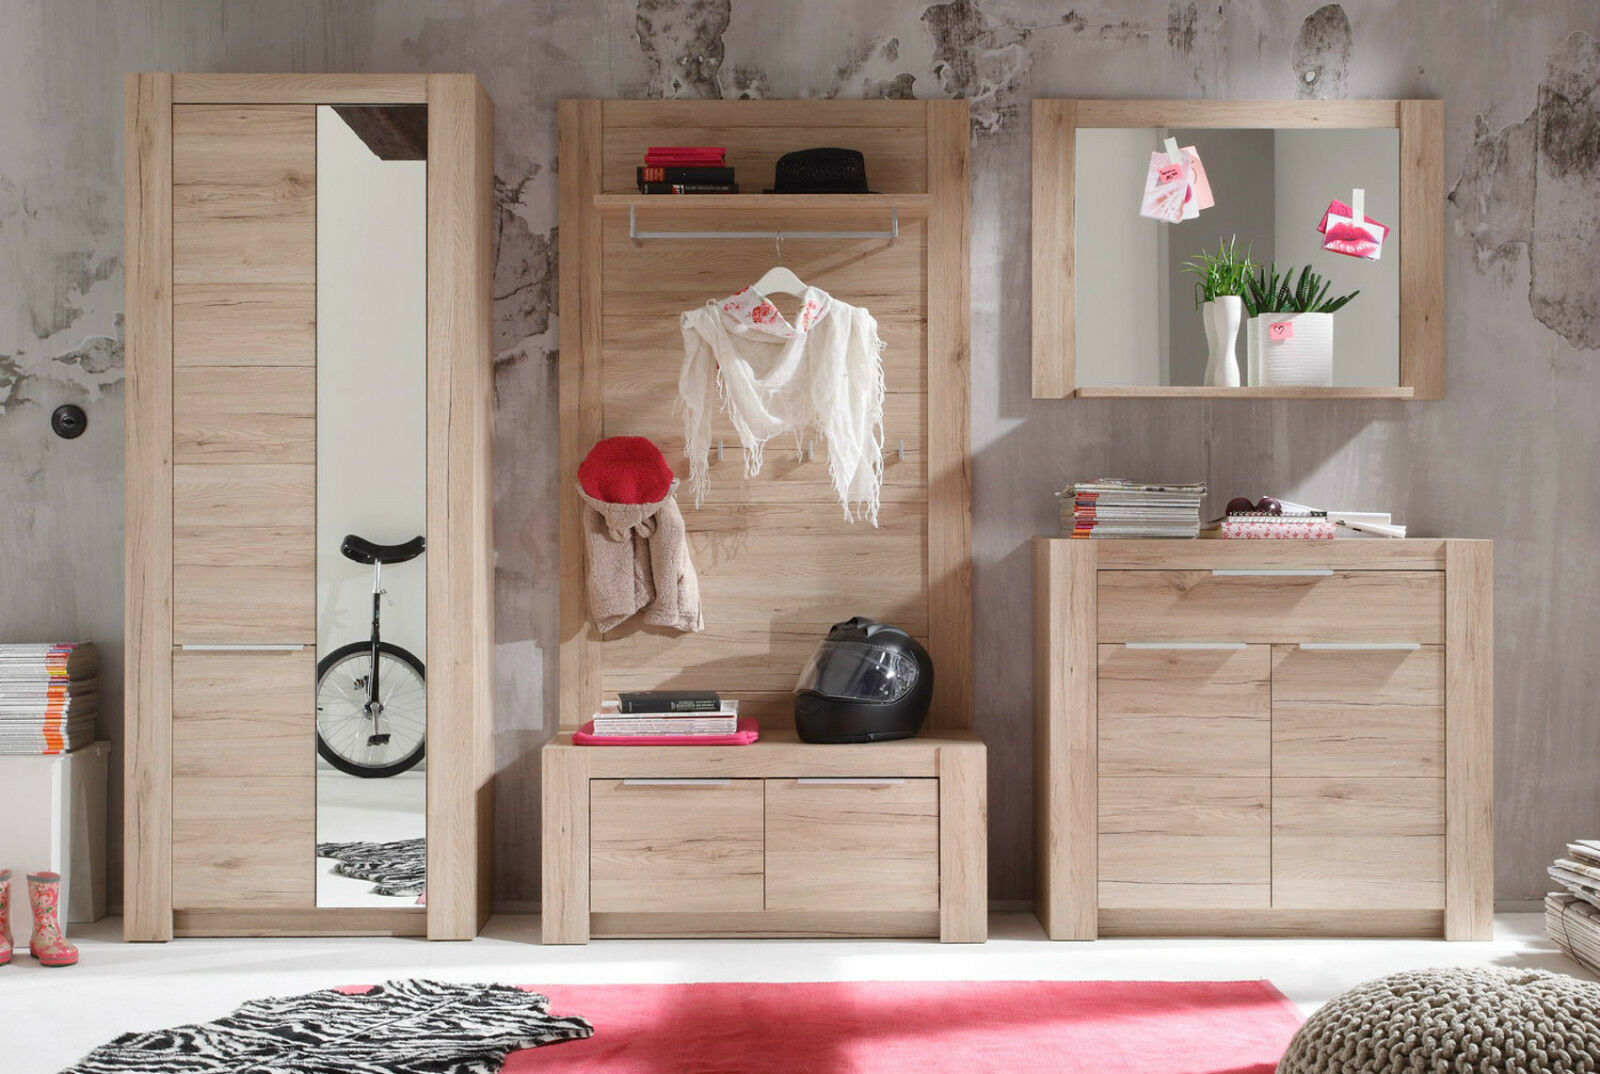 garderobenset flurgarderobe komplett set eiche 5 tlg schrank kommode bank cougar eur 567 99. Black Bedroom Furniture Sets. Home Design Ideas